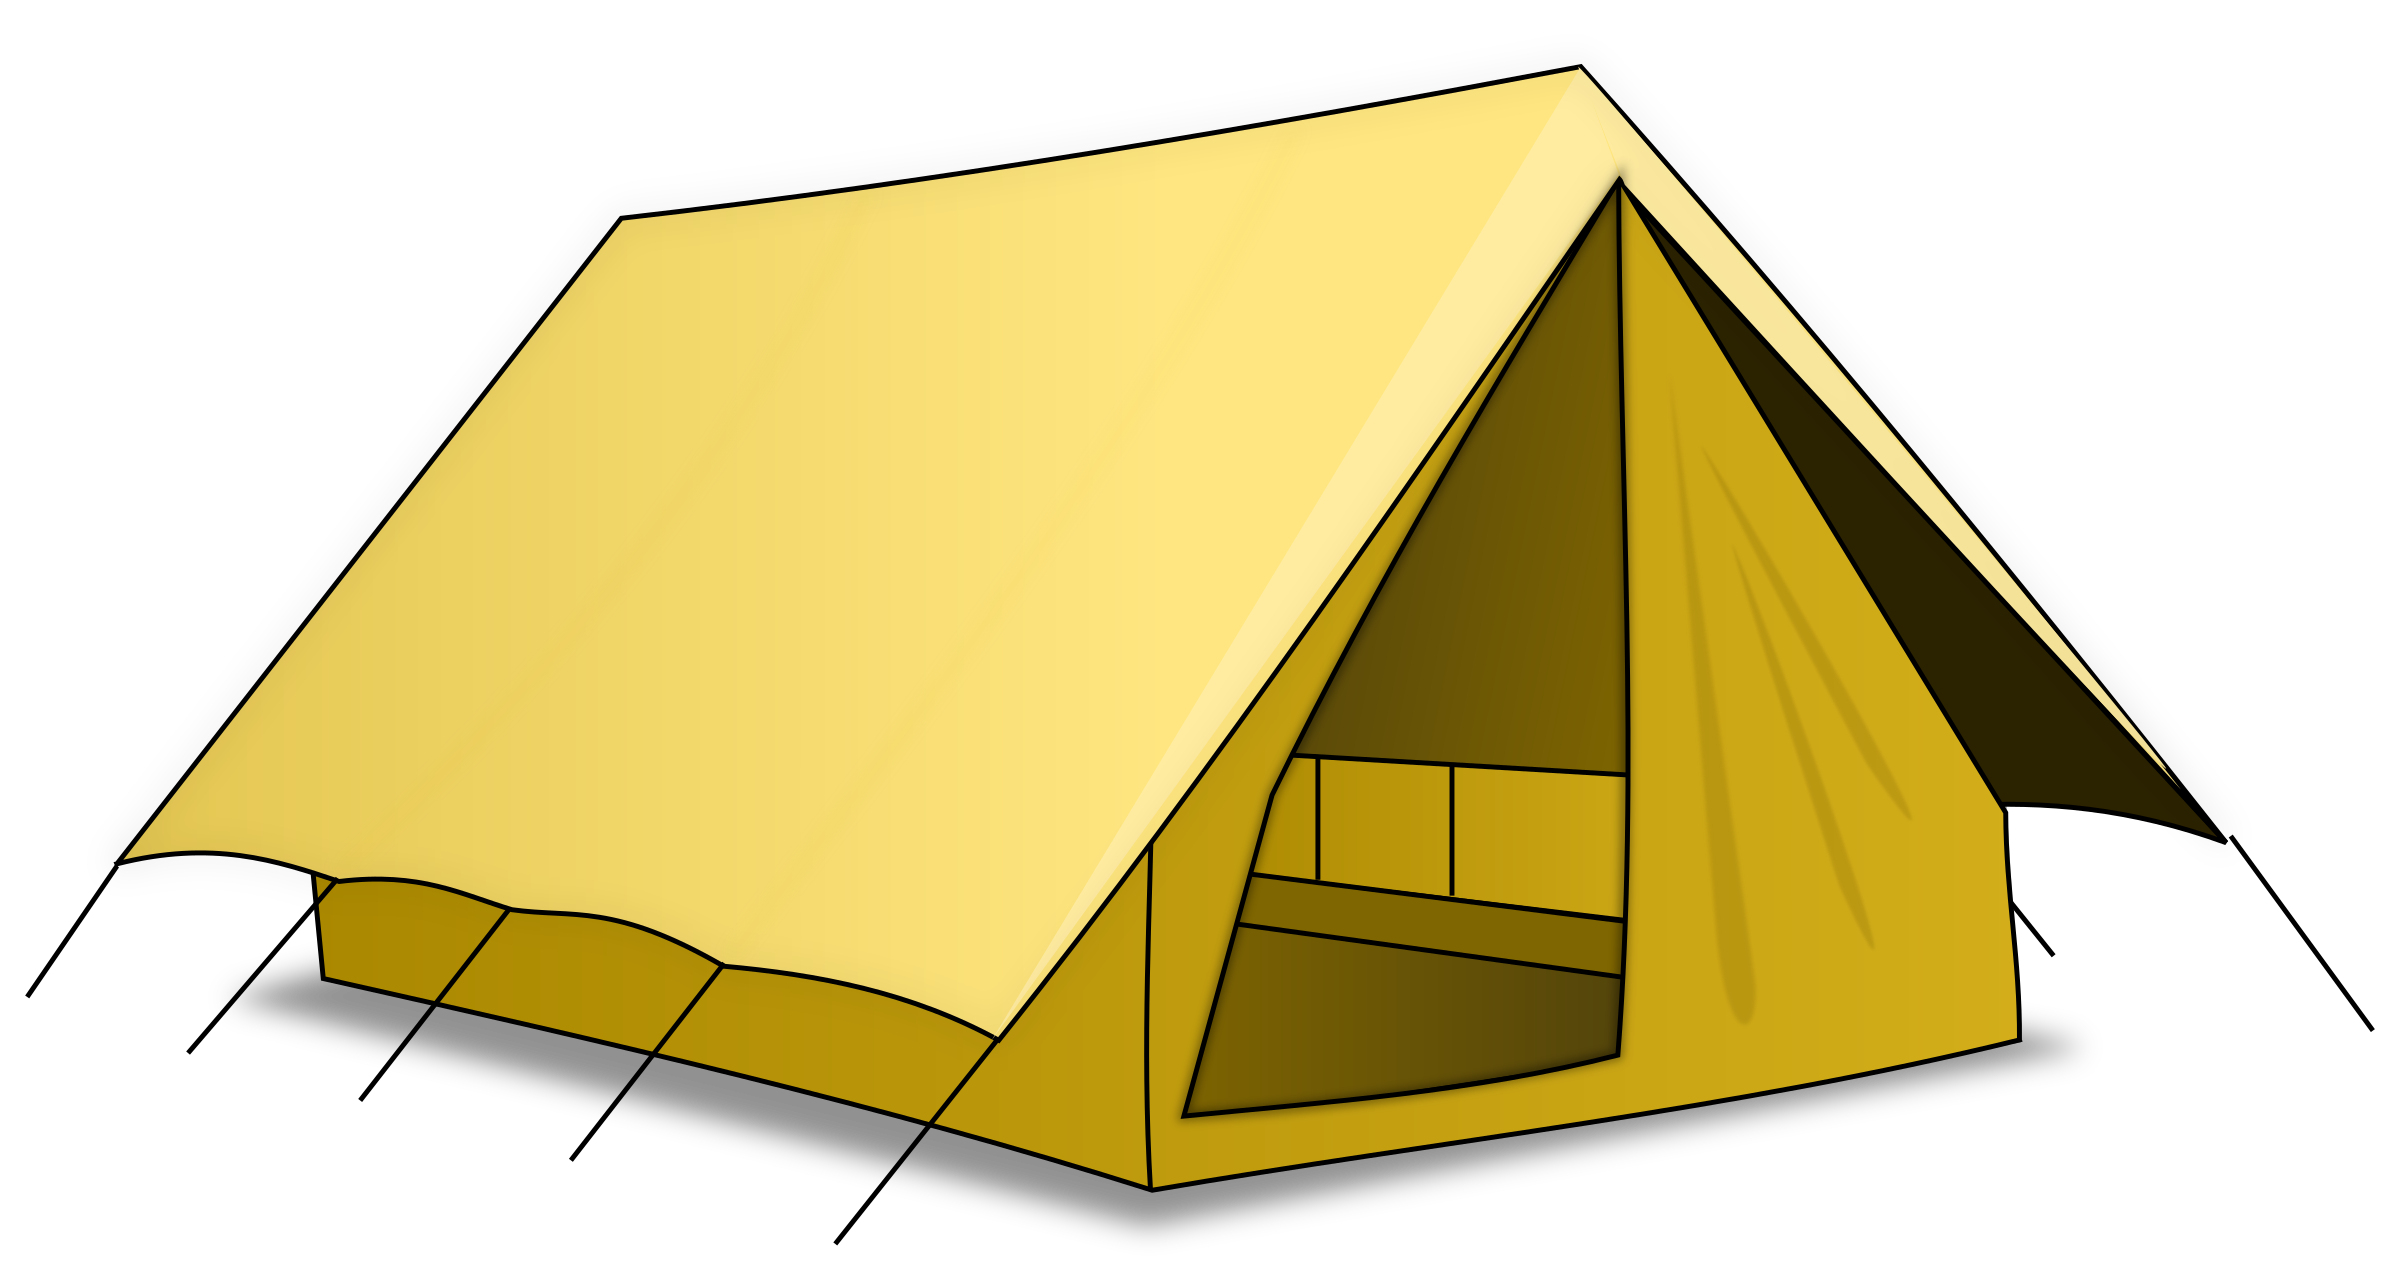 Yellow Tent PNG Image.